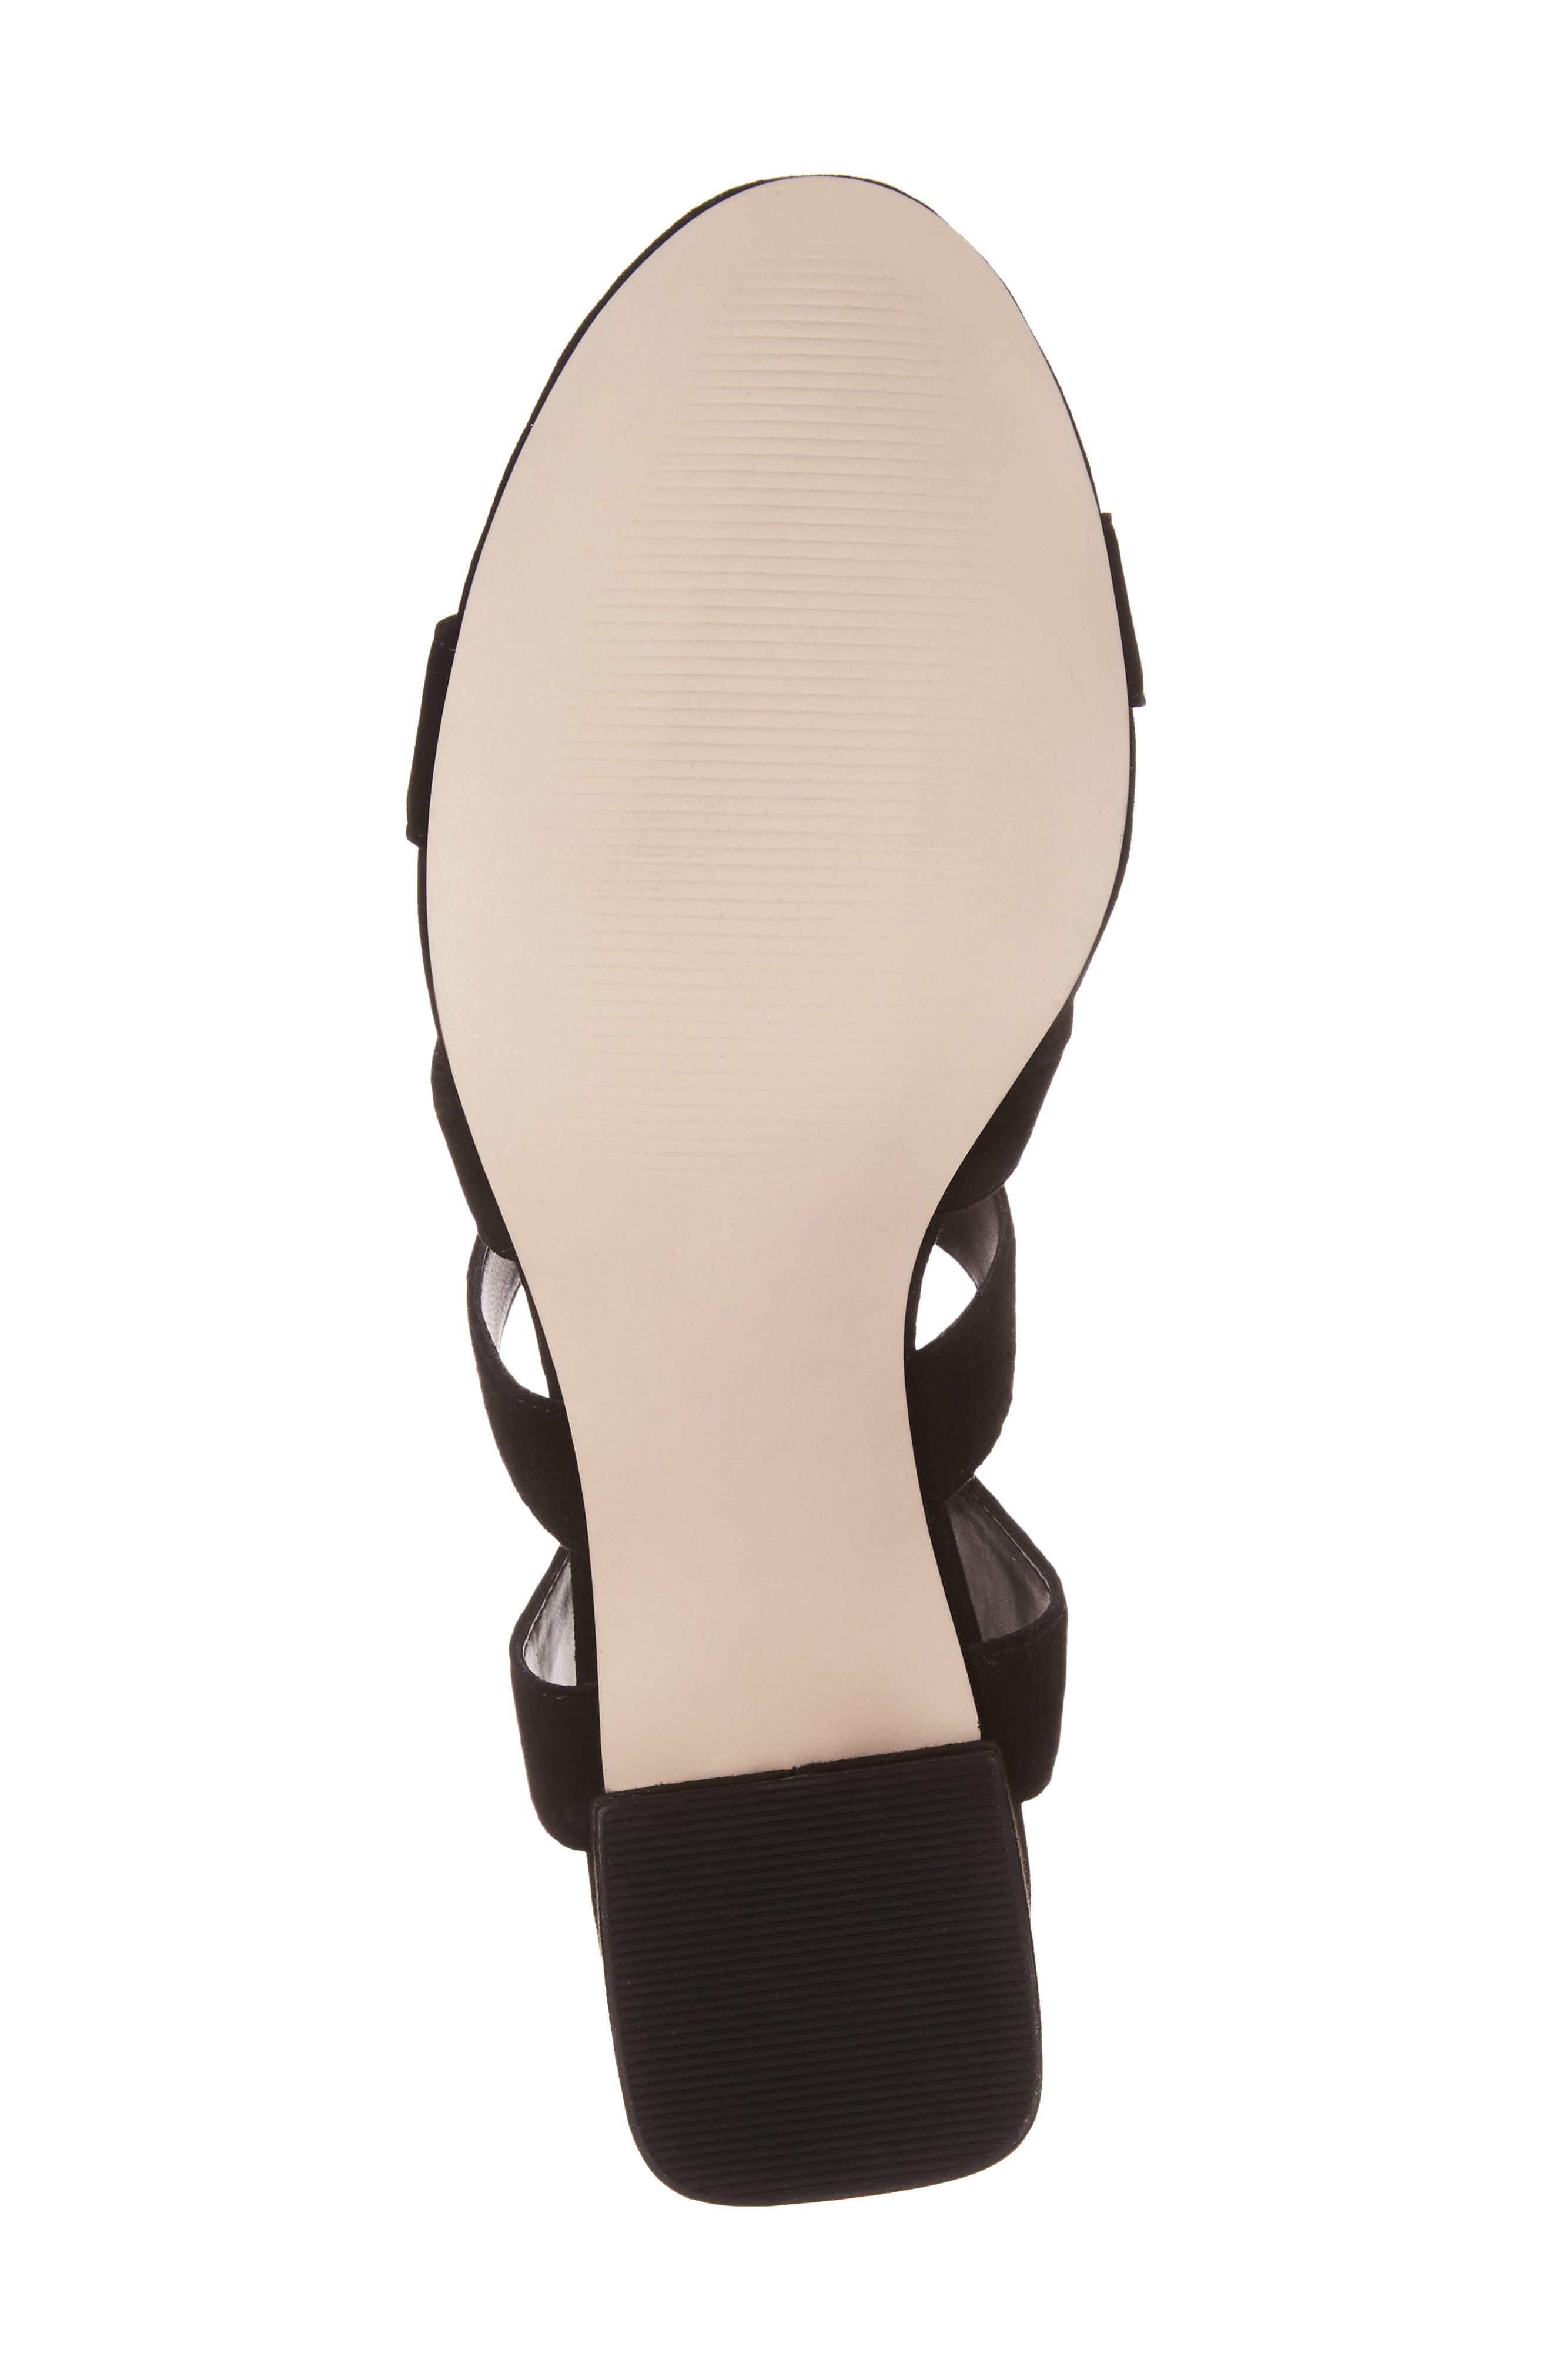 Rosemary Lace-Up Sandal,                             Alternate thumbnail 6, color,                             003